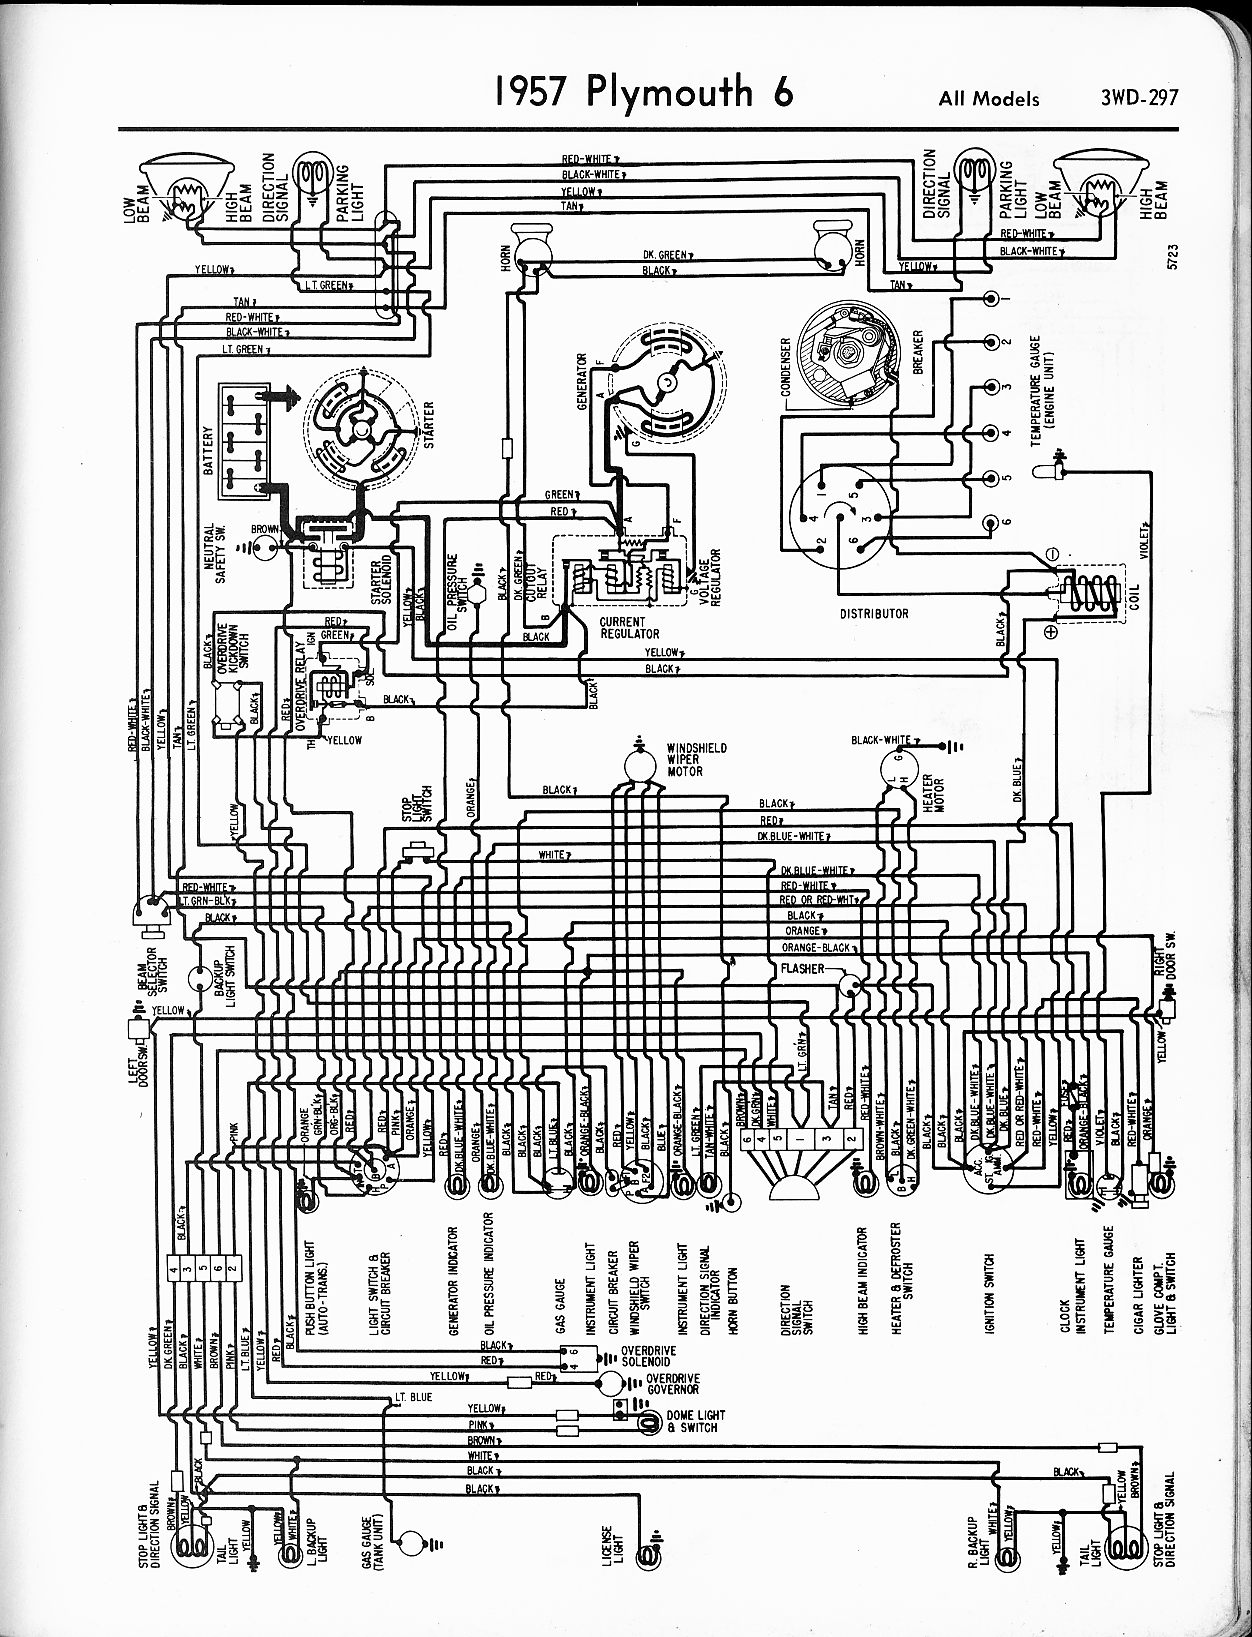 1957 plymouth wiring harness   28 wiring diagram images